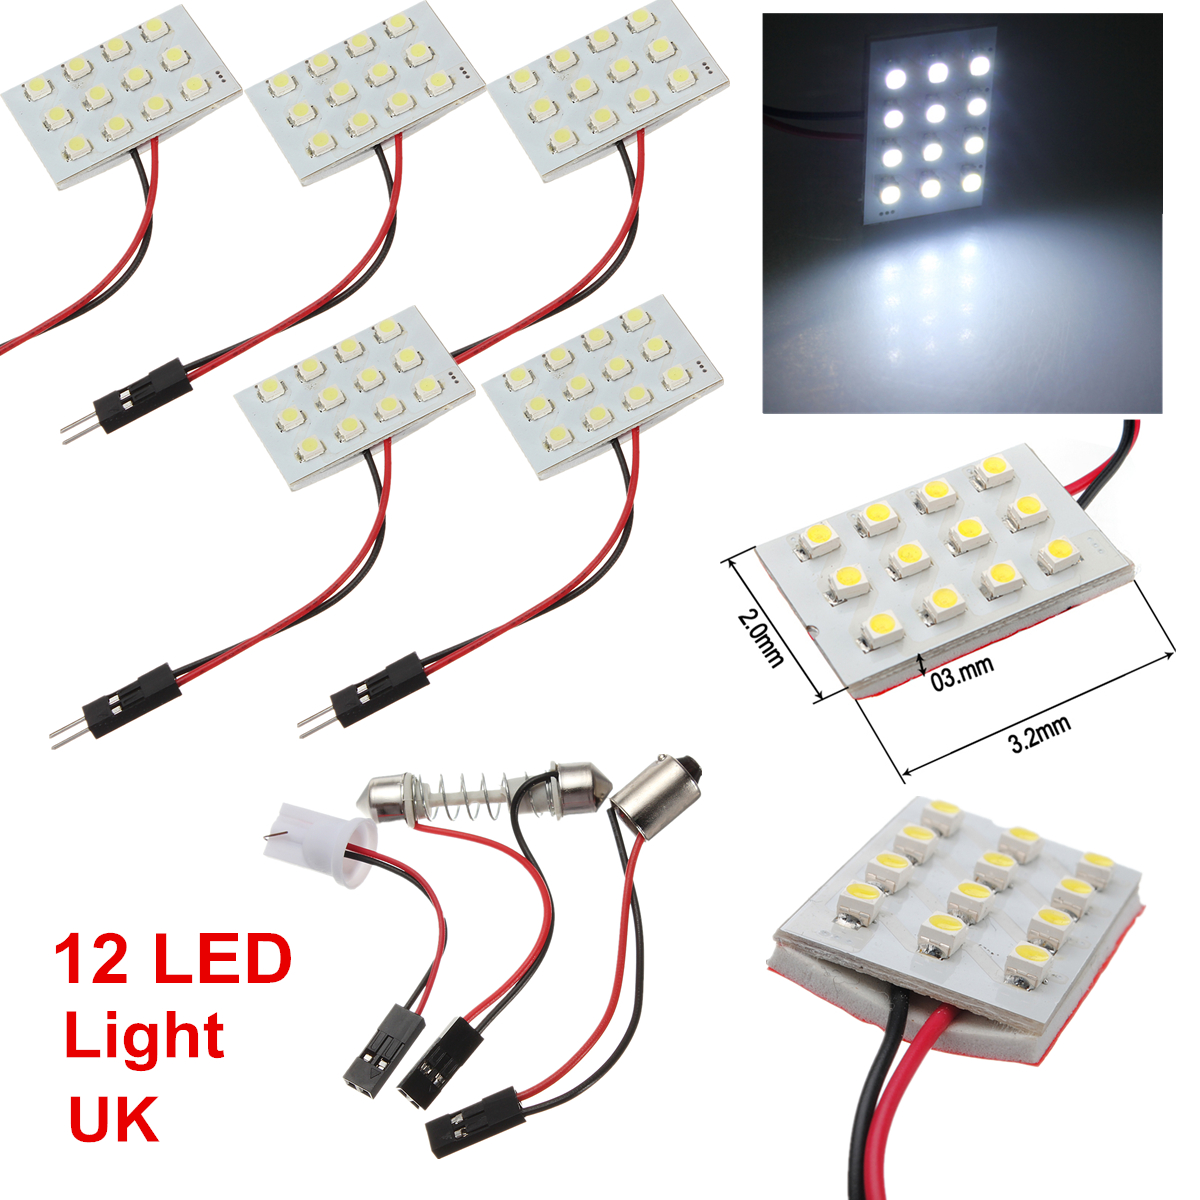 t10 ba9s white cob 24 smd leds car interior number panel dome festoon light 12v ebay. Black Bedroom Furniture Sets. Home Design Ideas